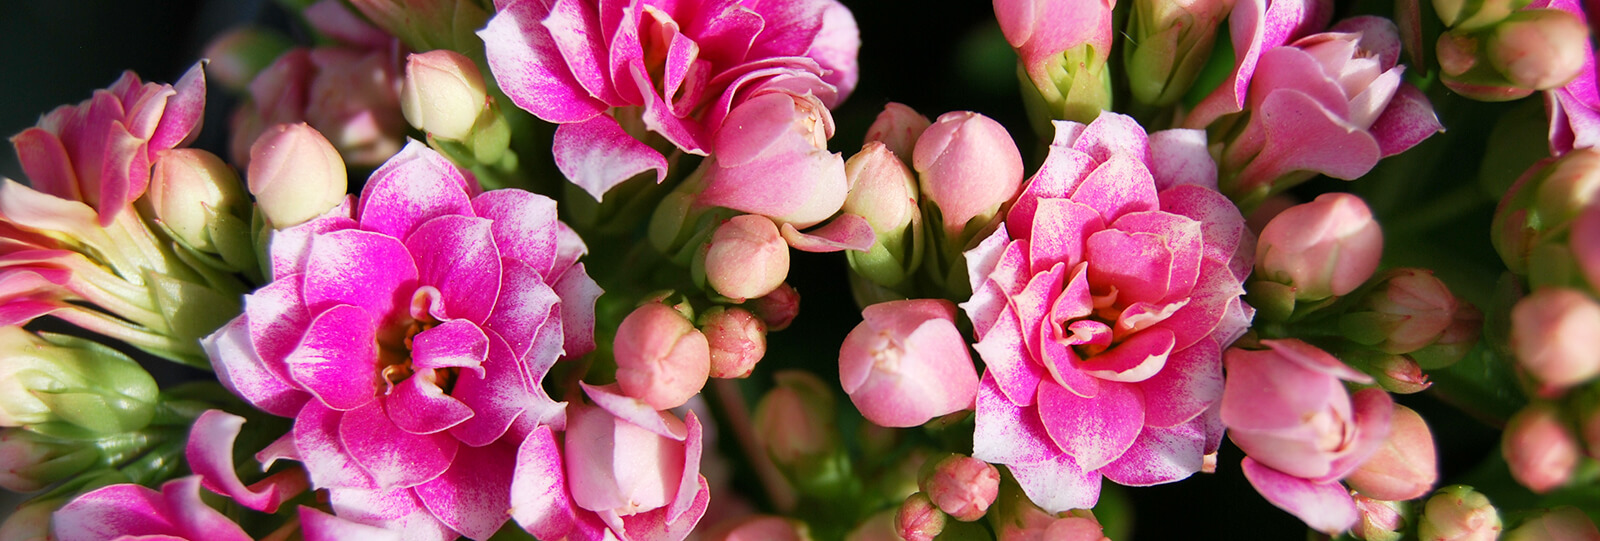 plants for all season alternatives to flowers valentines pink kalanchoe close up